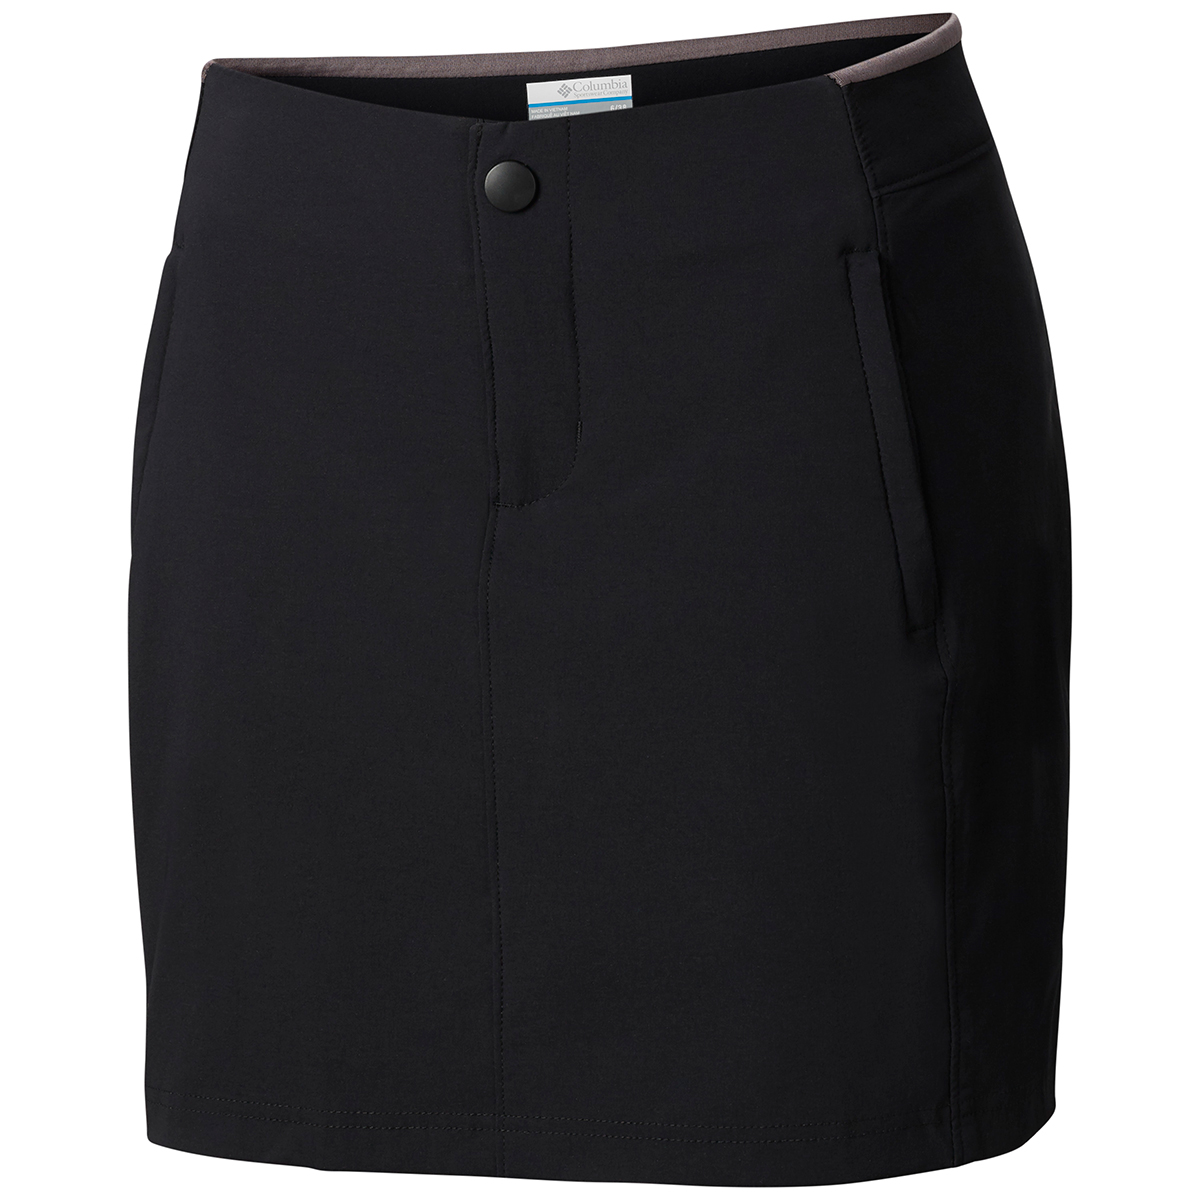 Columbia Women's Bryce Peak Skort - Black, 8